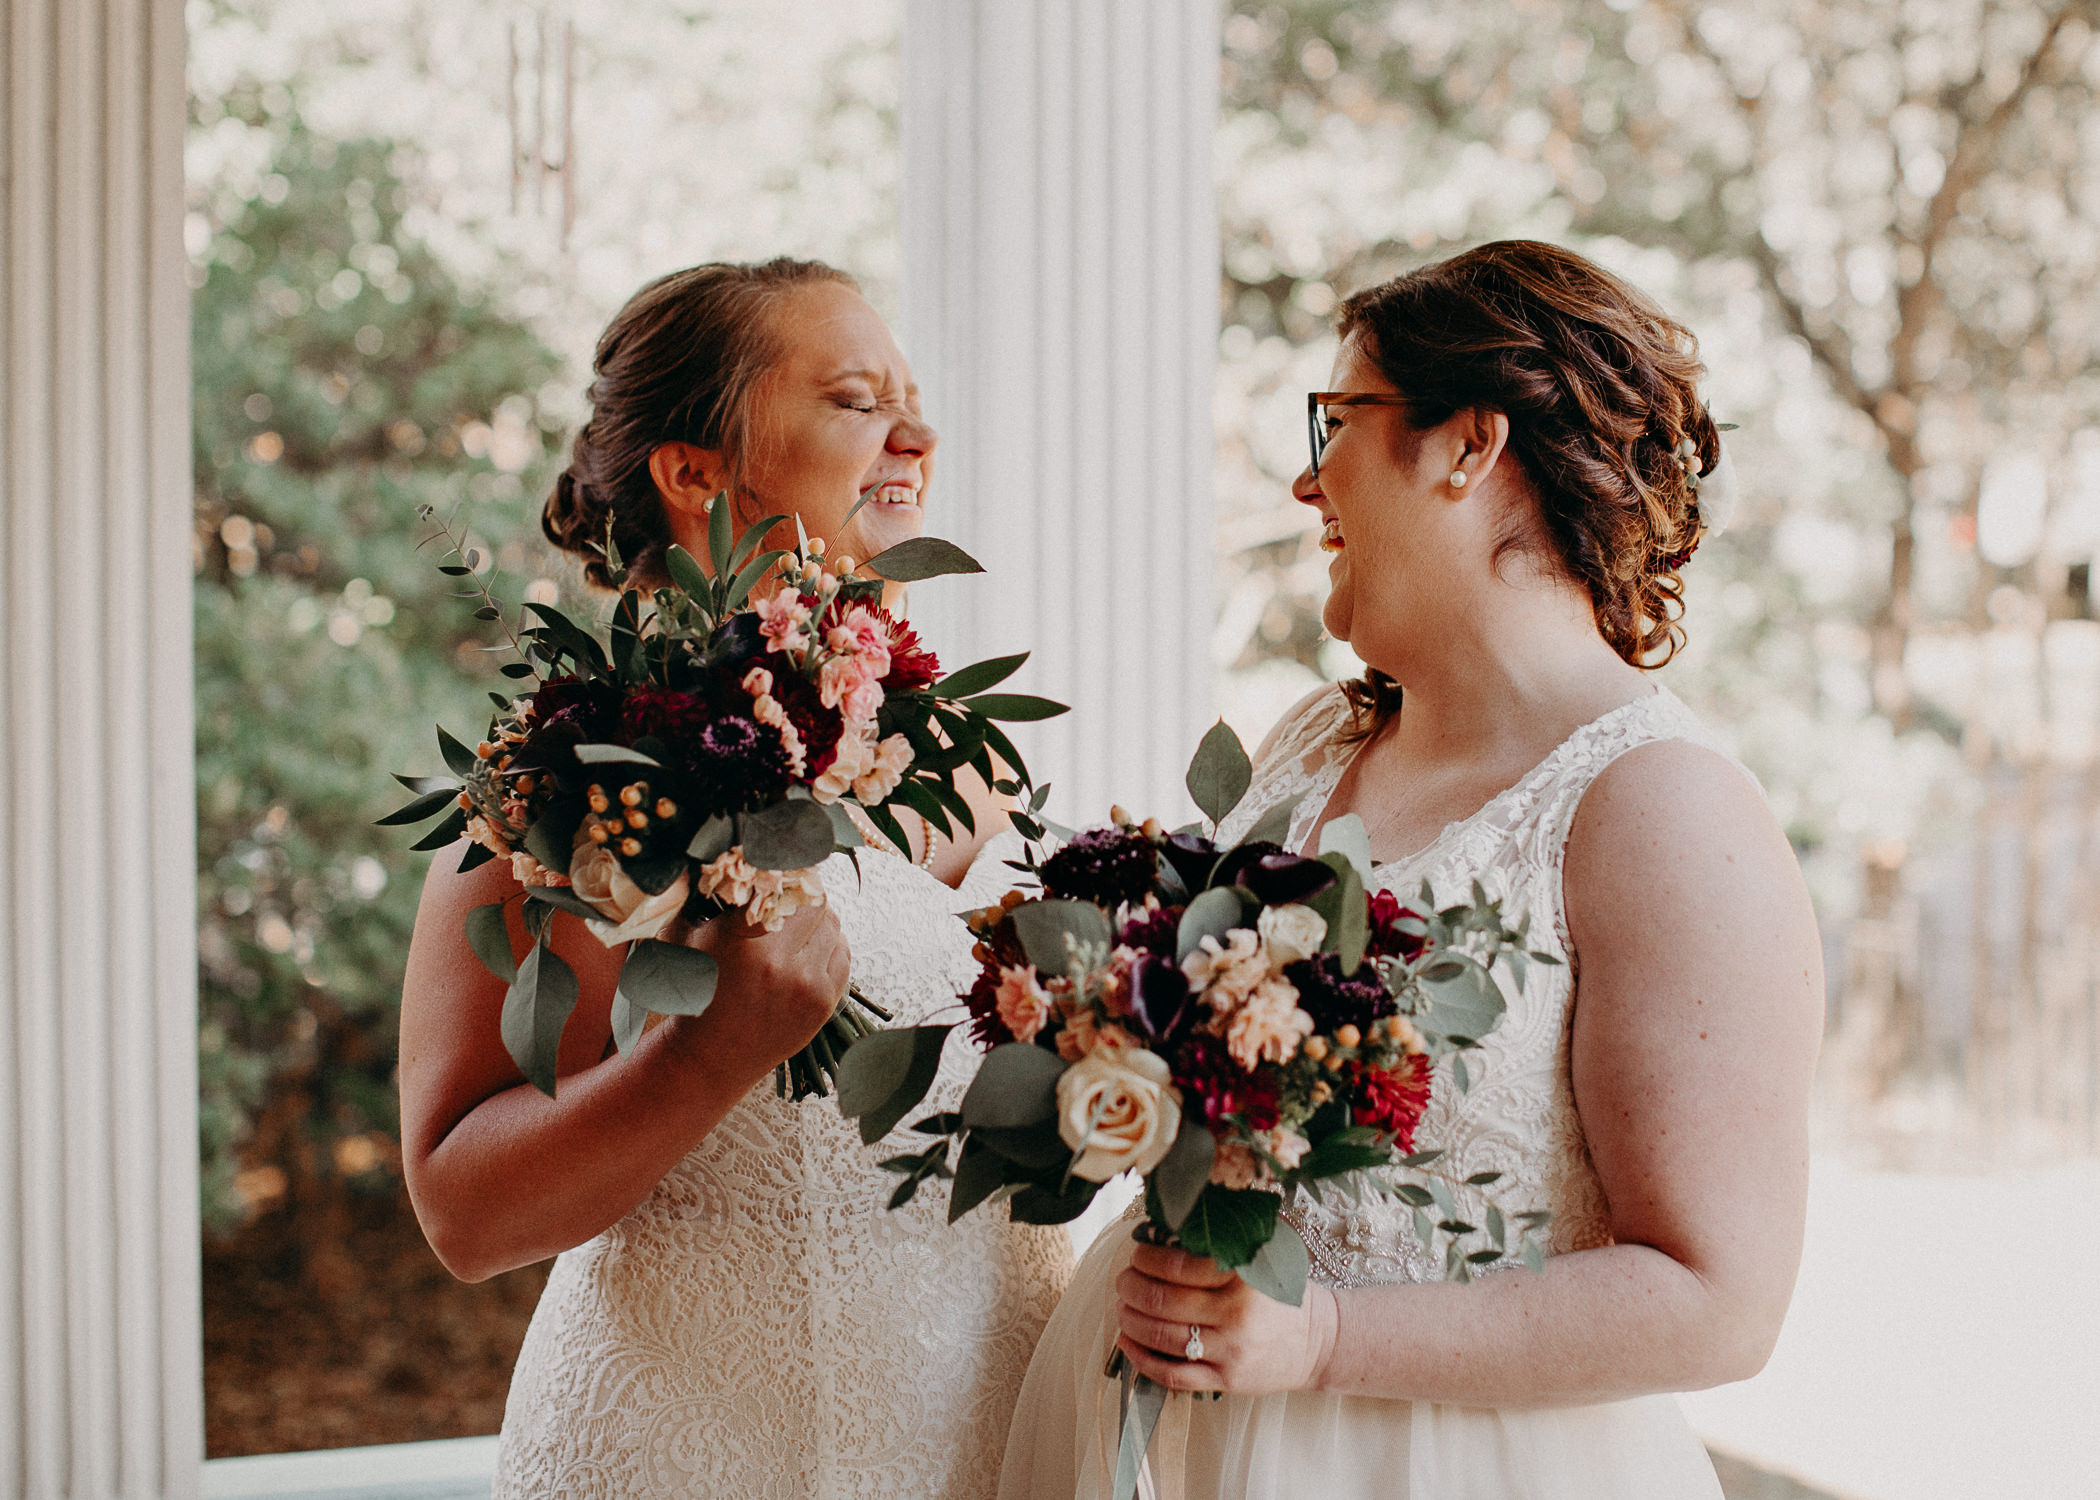 28 - Atlanta wedding photographer - Same sex wedding - wedding dress - details - ceremony - reception - bridal party - two brides. Aline Marin Photography .jpg.JPG